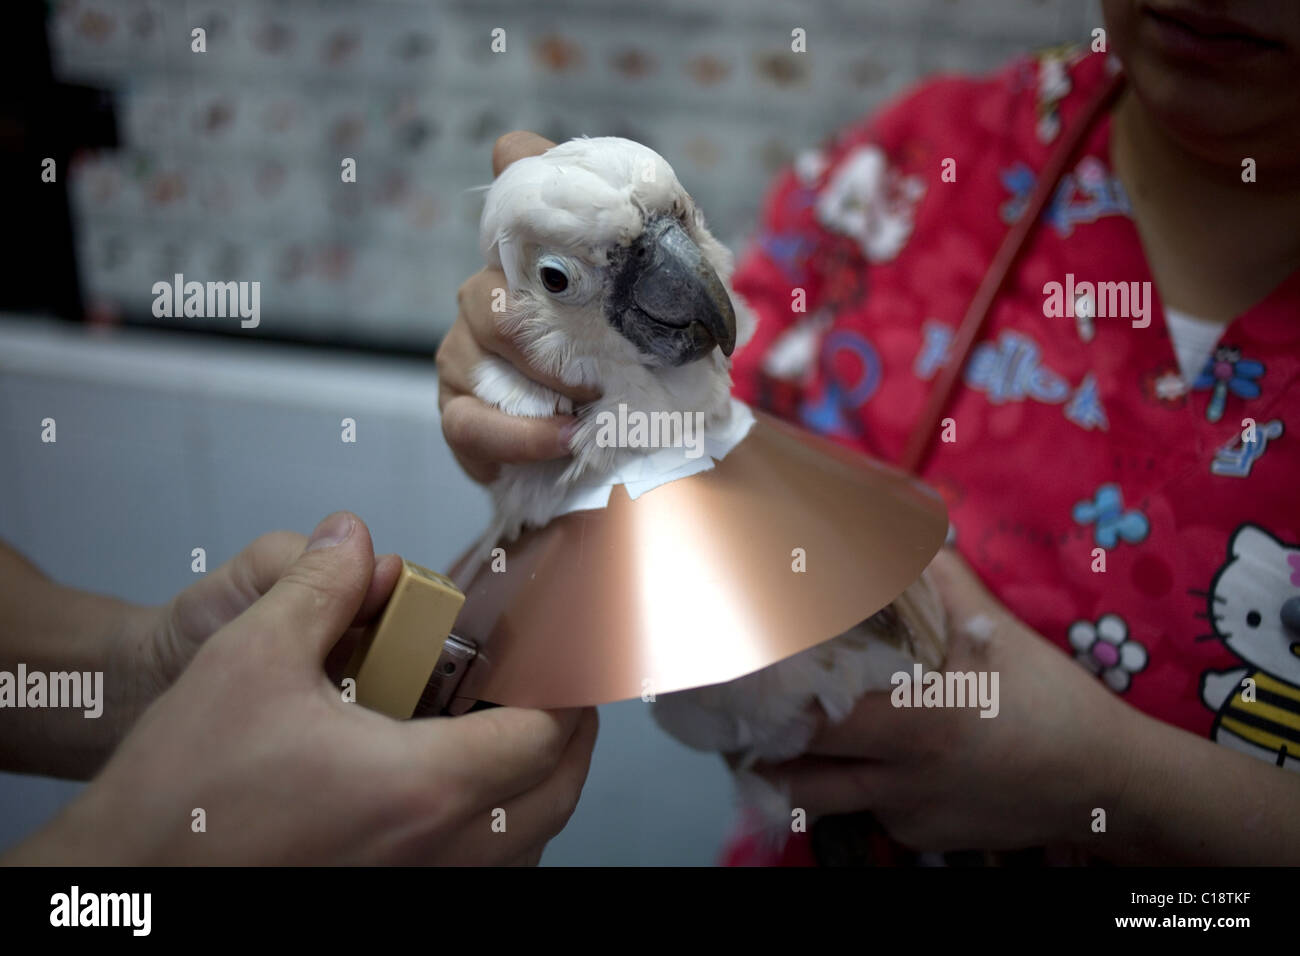 Veterinarians put an Elizabethan collar to a White Cockatoo at a Pet Hospital in Condesa, Mexico City, Mexico, February - Stock Image